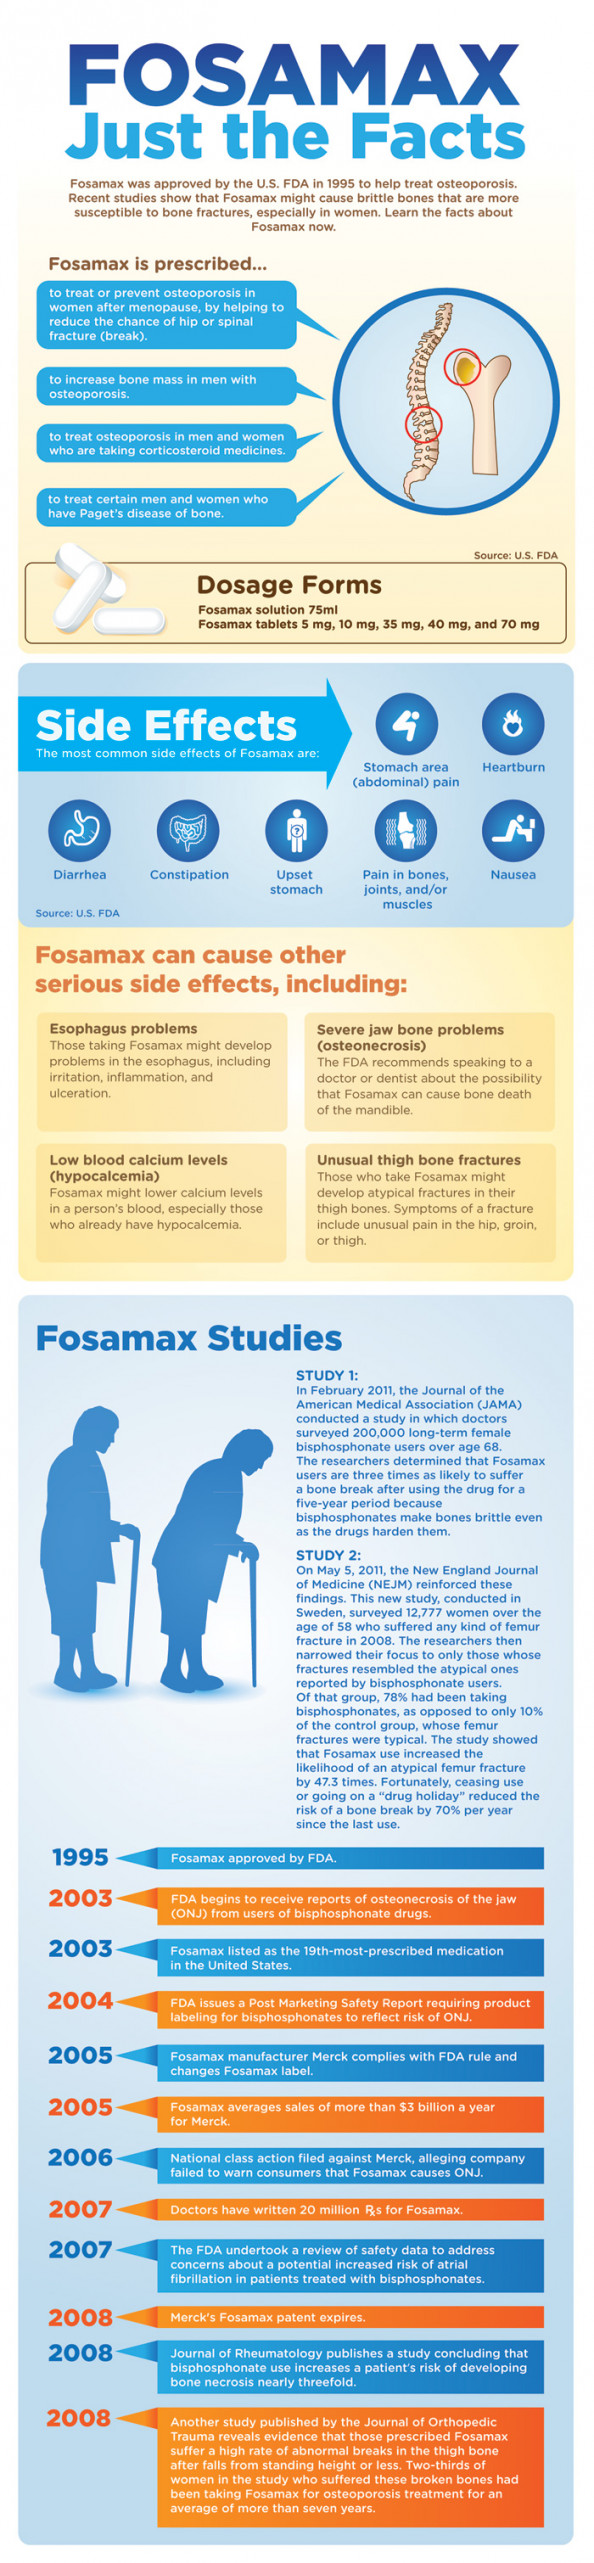 Fosamax - Just The Facts Infographic